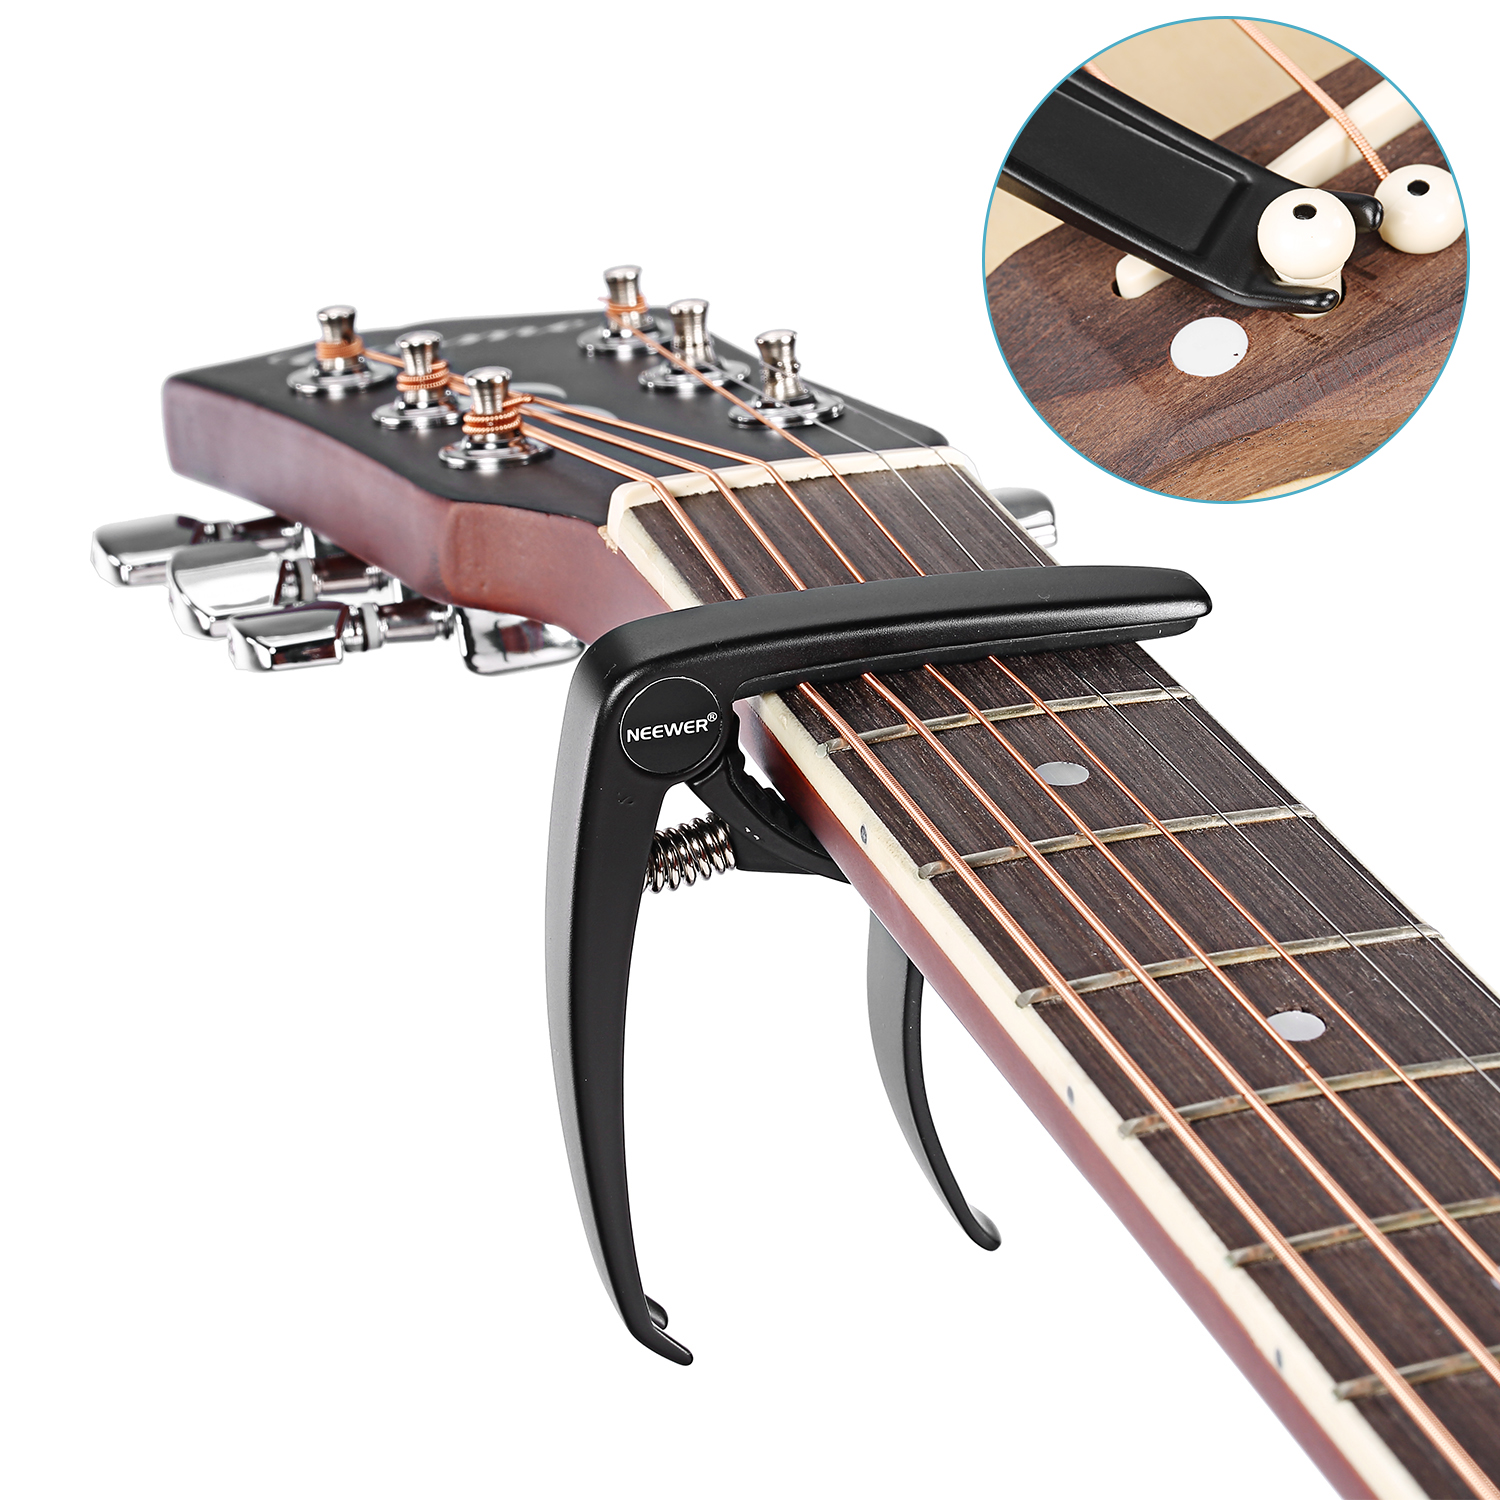 neewer guitar capo with bridge pin puller for acoustic and electric guitar ebay. Black Bedroom Furniture Sets. Home Design Ideas